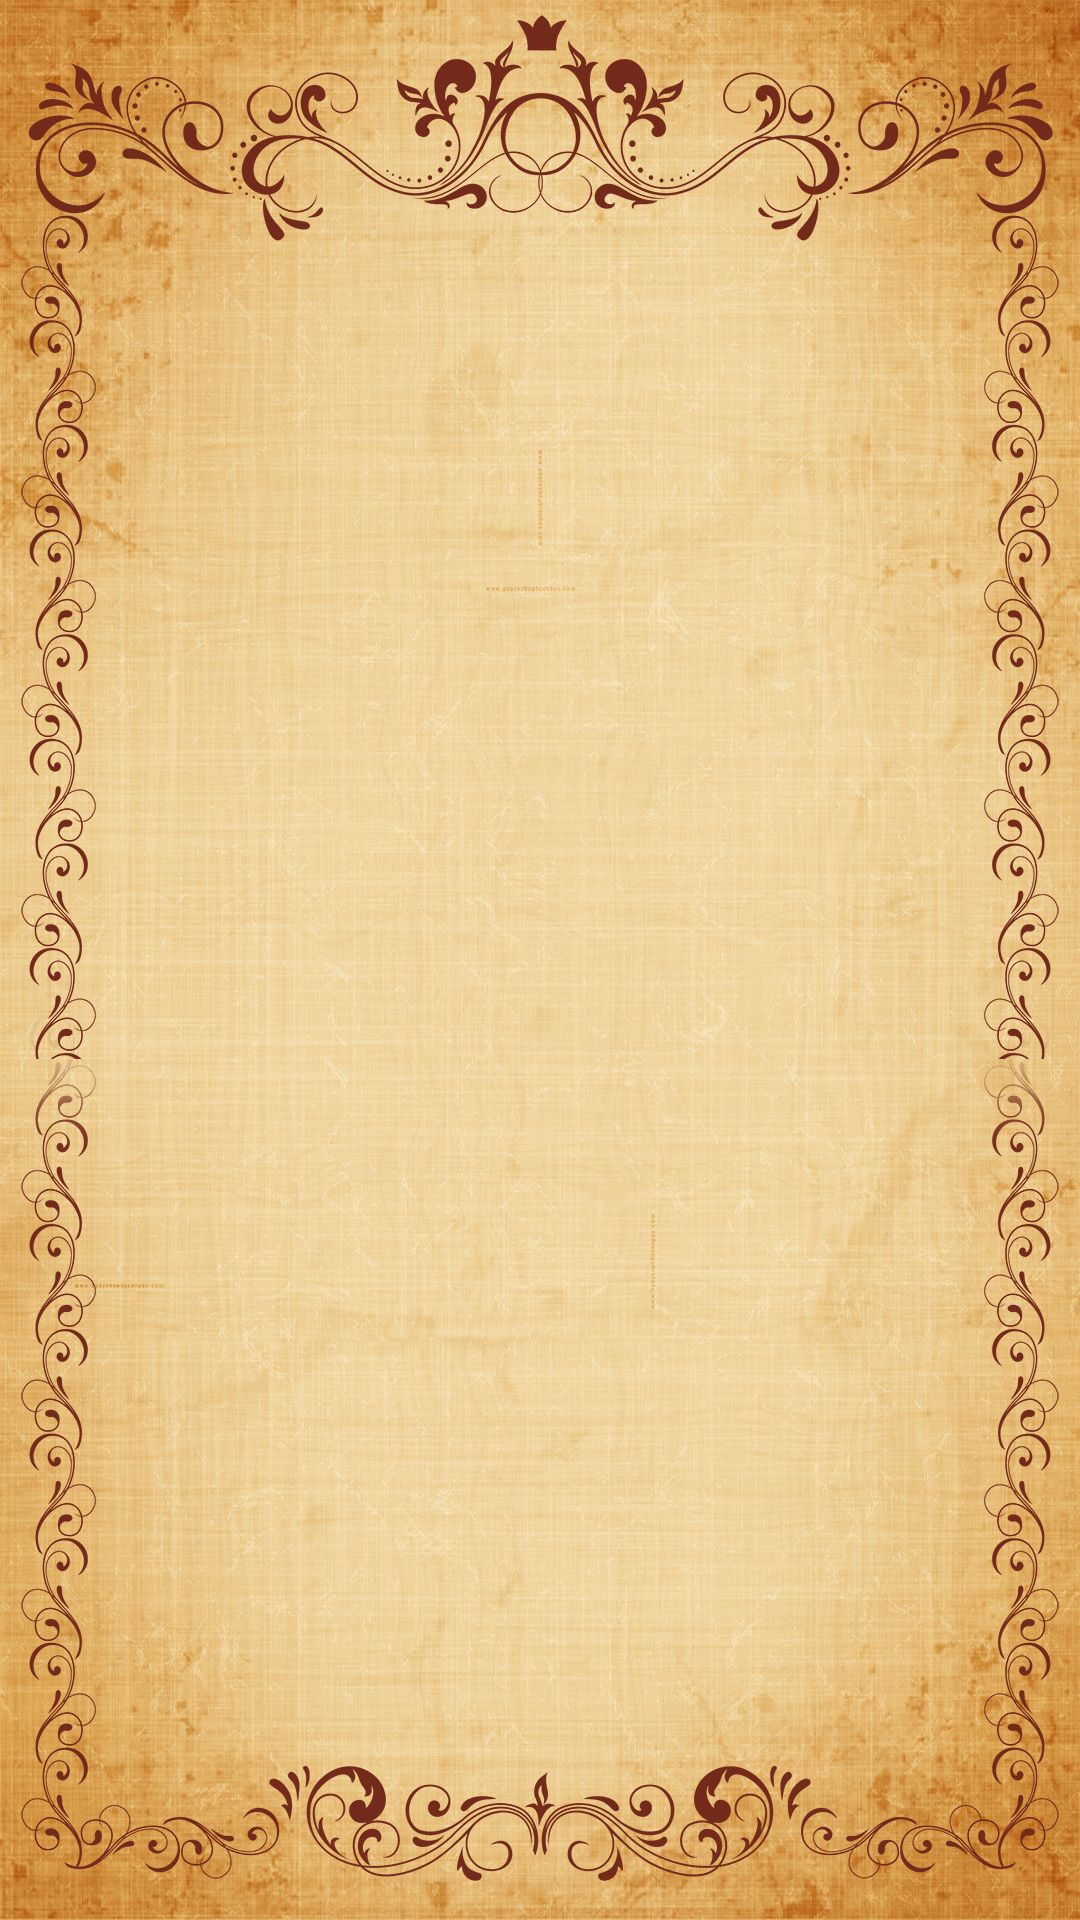 Classical Vintage Lace Background